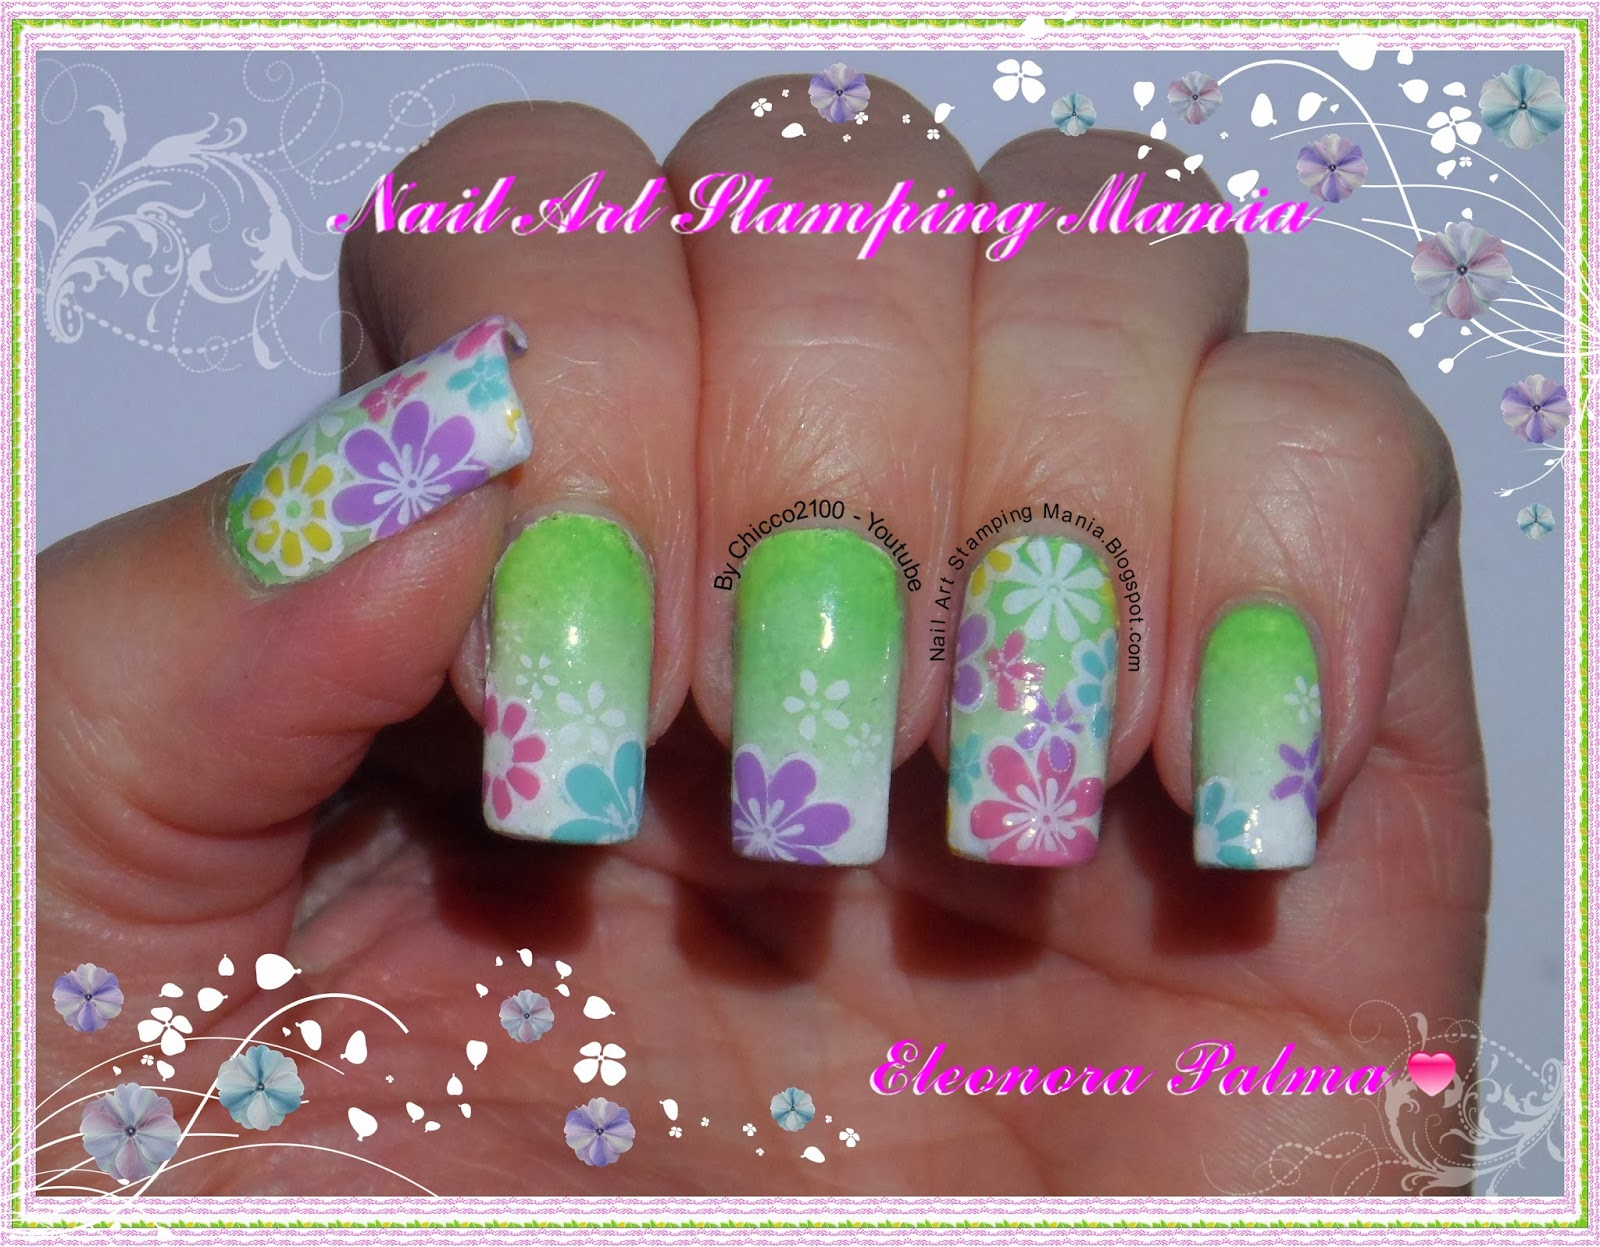 Nail art stamping mania stamping decal with konad plate m100 stamping decal with konad plate m100 prinsesfo Choice Image